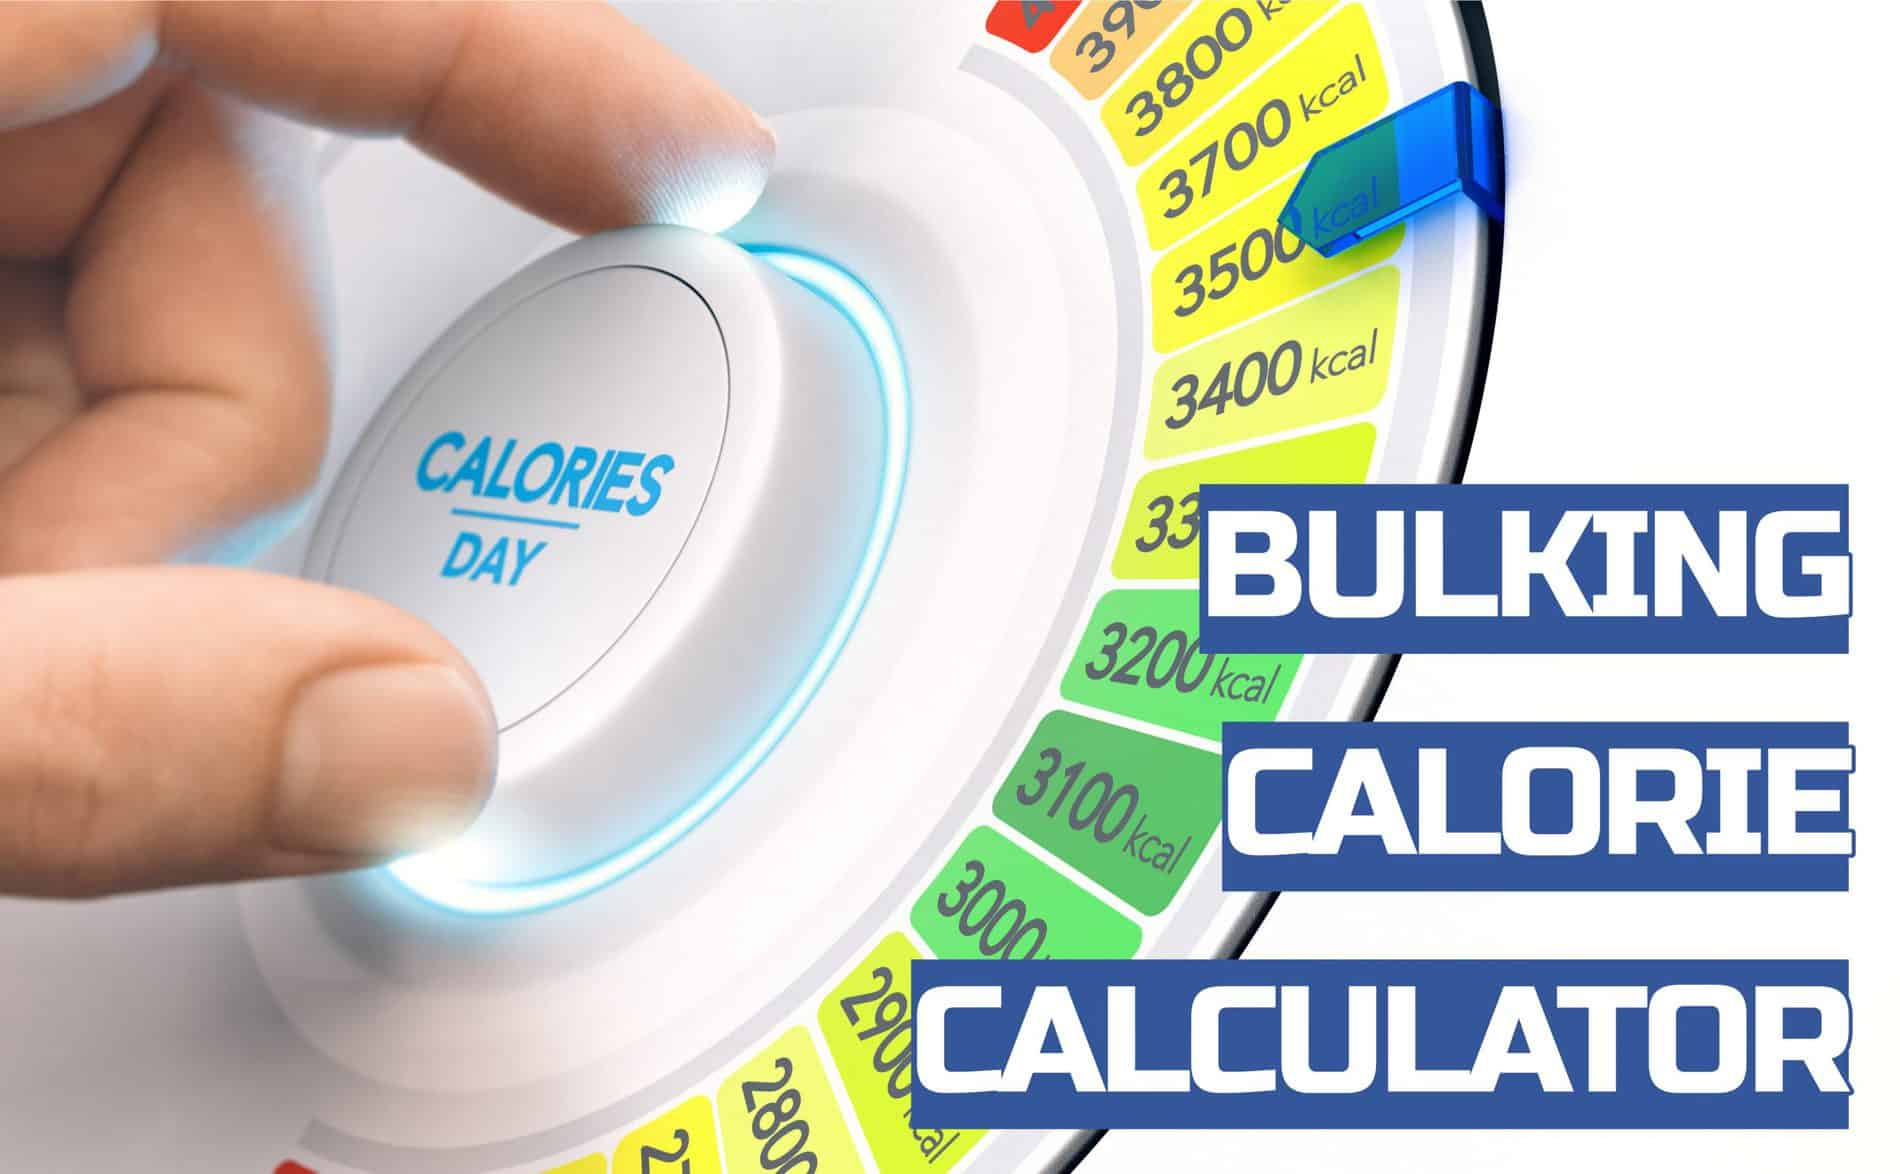 bulking calorie calculator